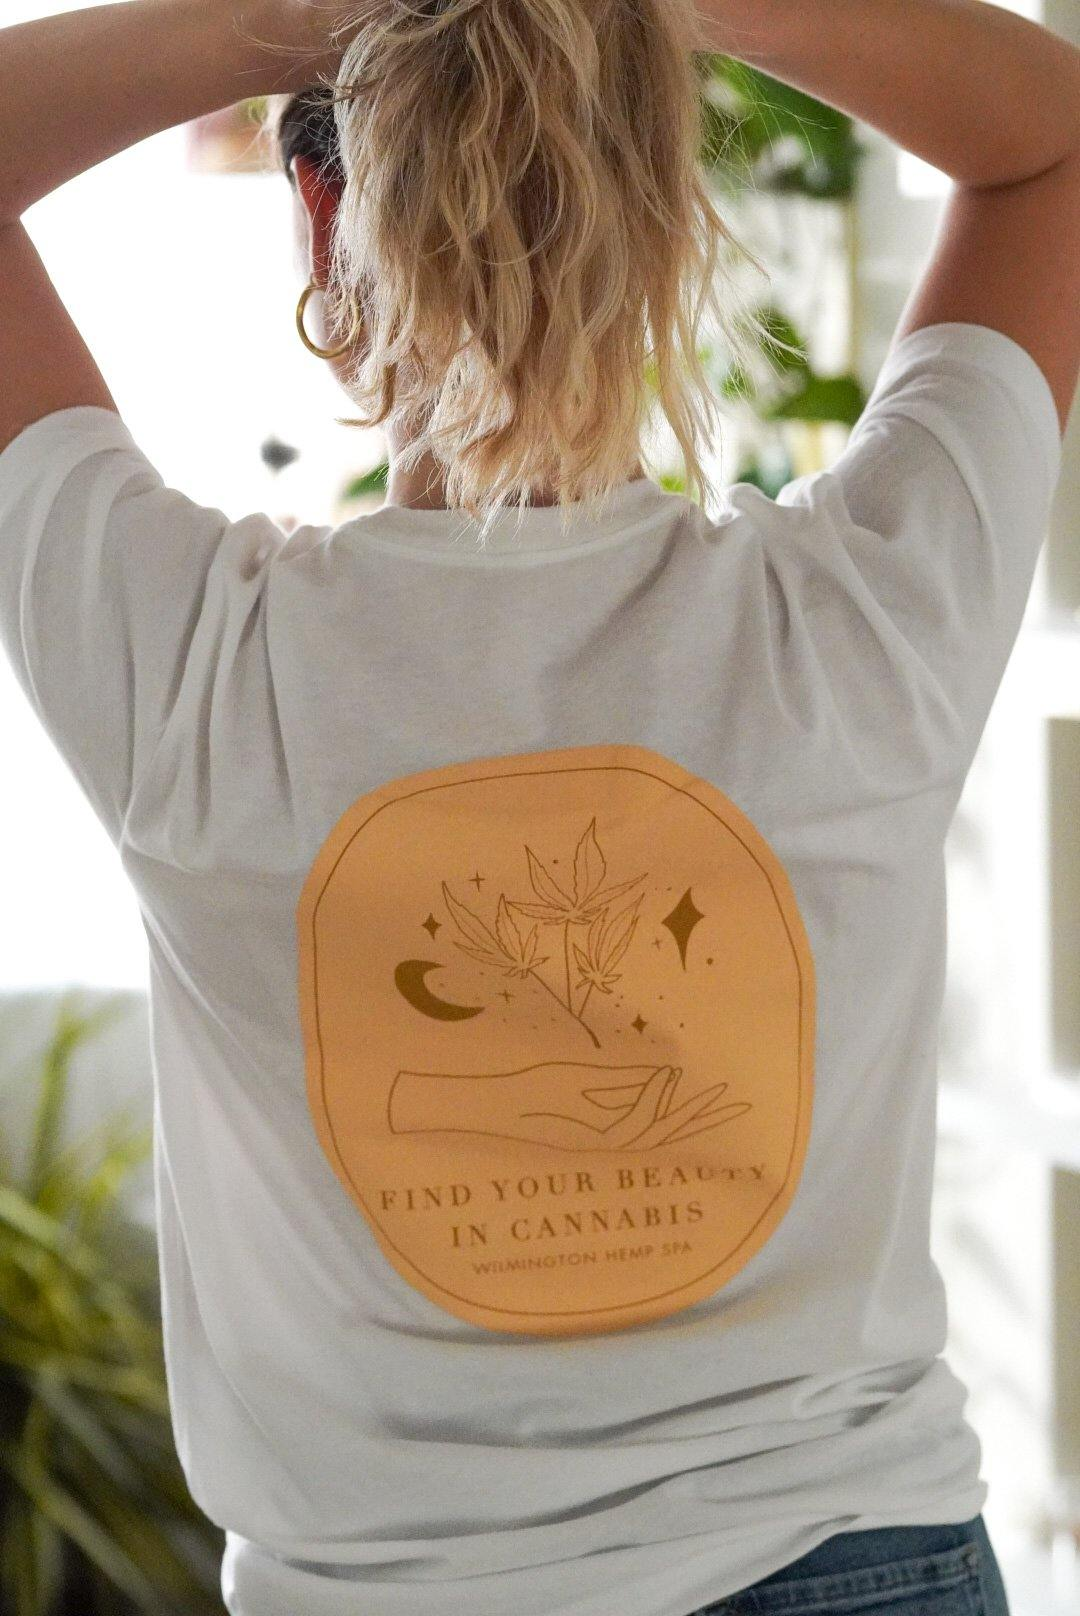 Find Your Beauty In Cannabis T-Shirt - Wilmington Hemp Spa